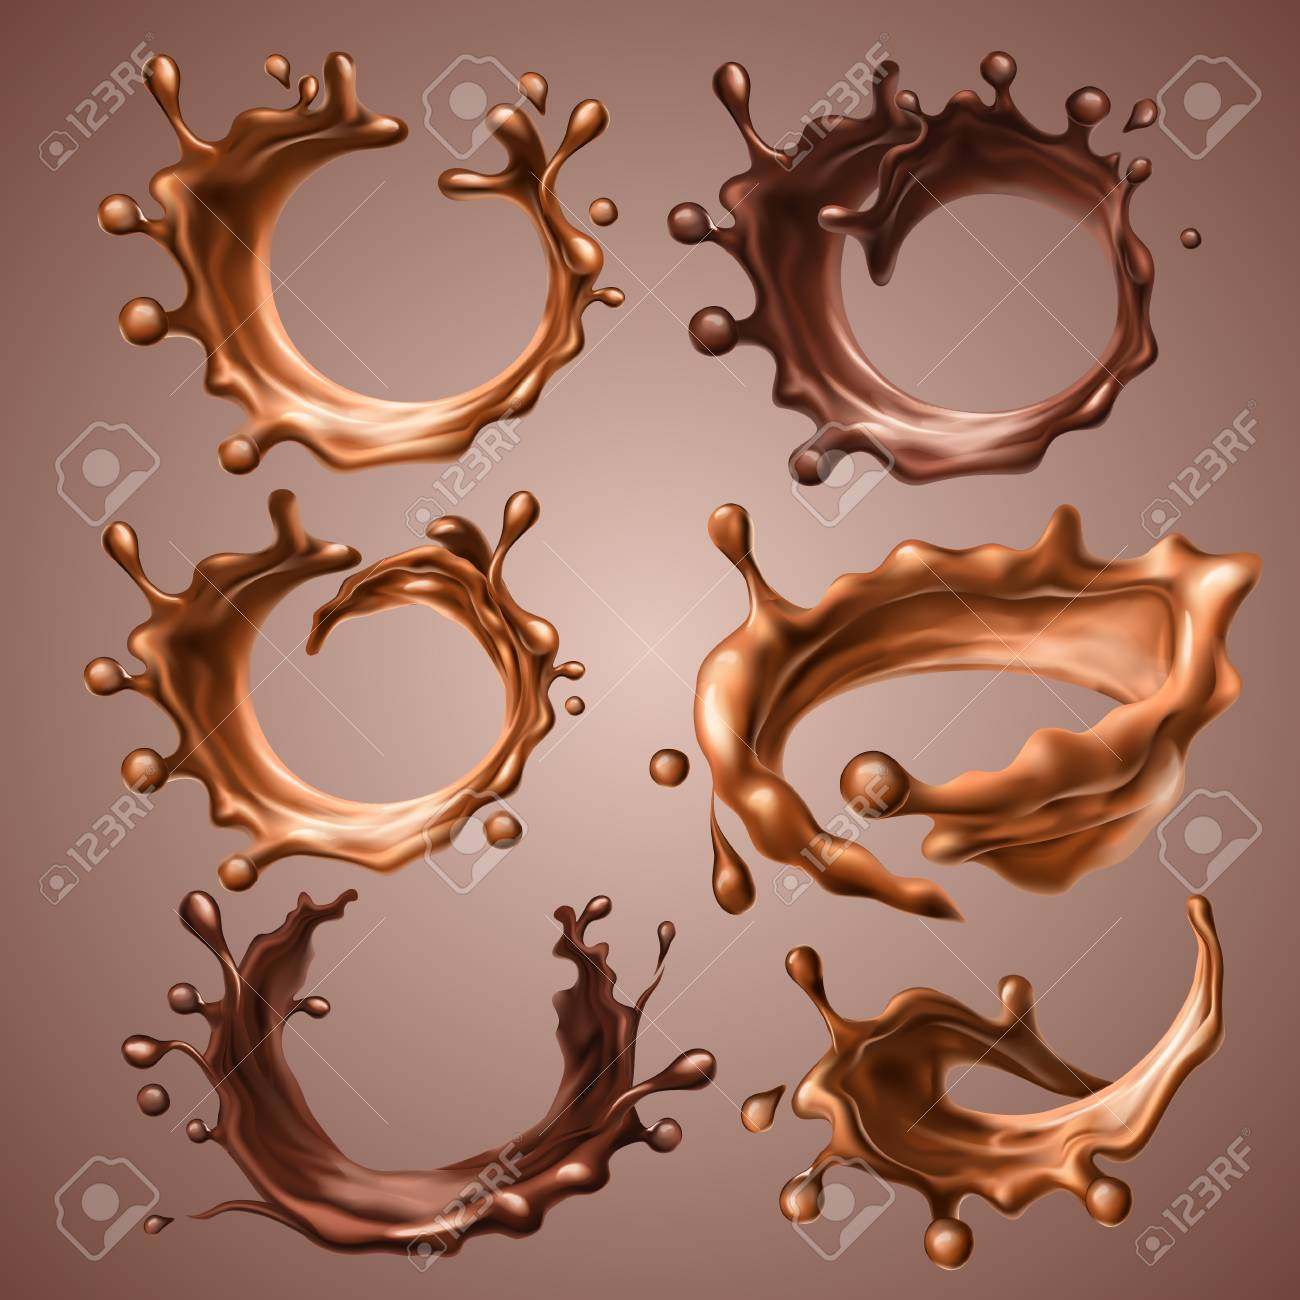 Set of realistic splashes and drops of melted milk and dark chocolate. Dynamic circle splashes of whirl liquid chocolate, hot coffee, cocoa. Design elements for packaging. Vector 3d illustration. - 96686934